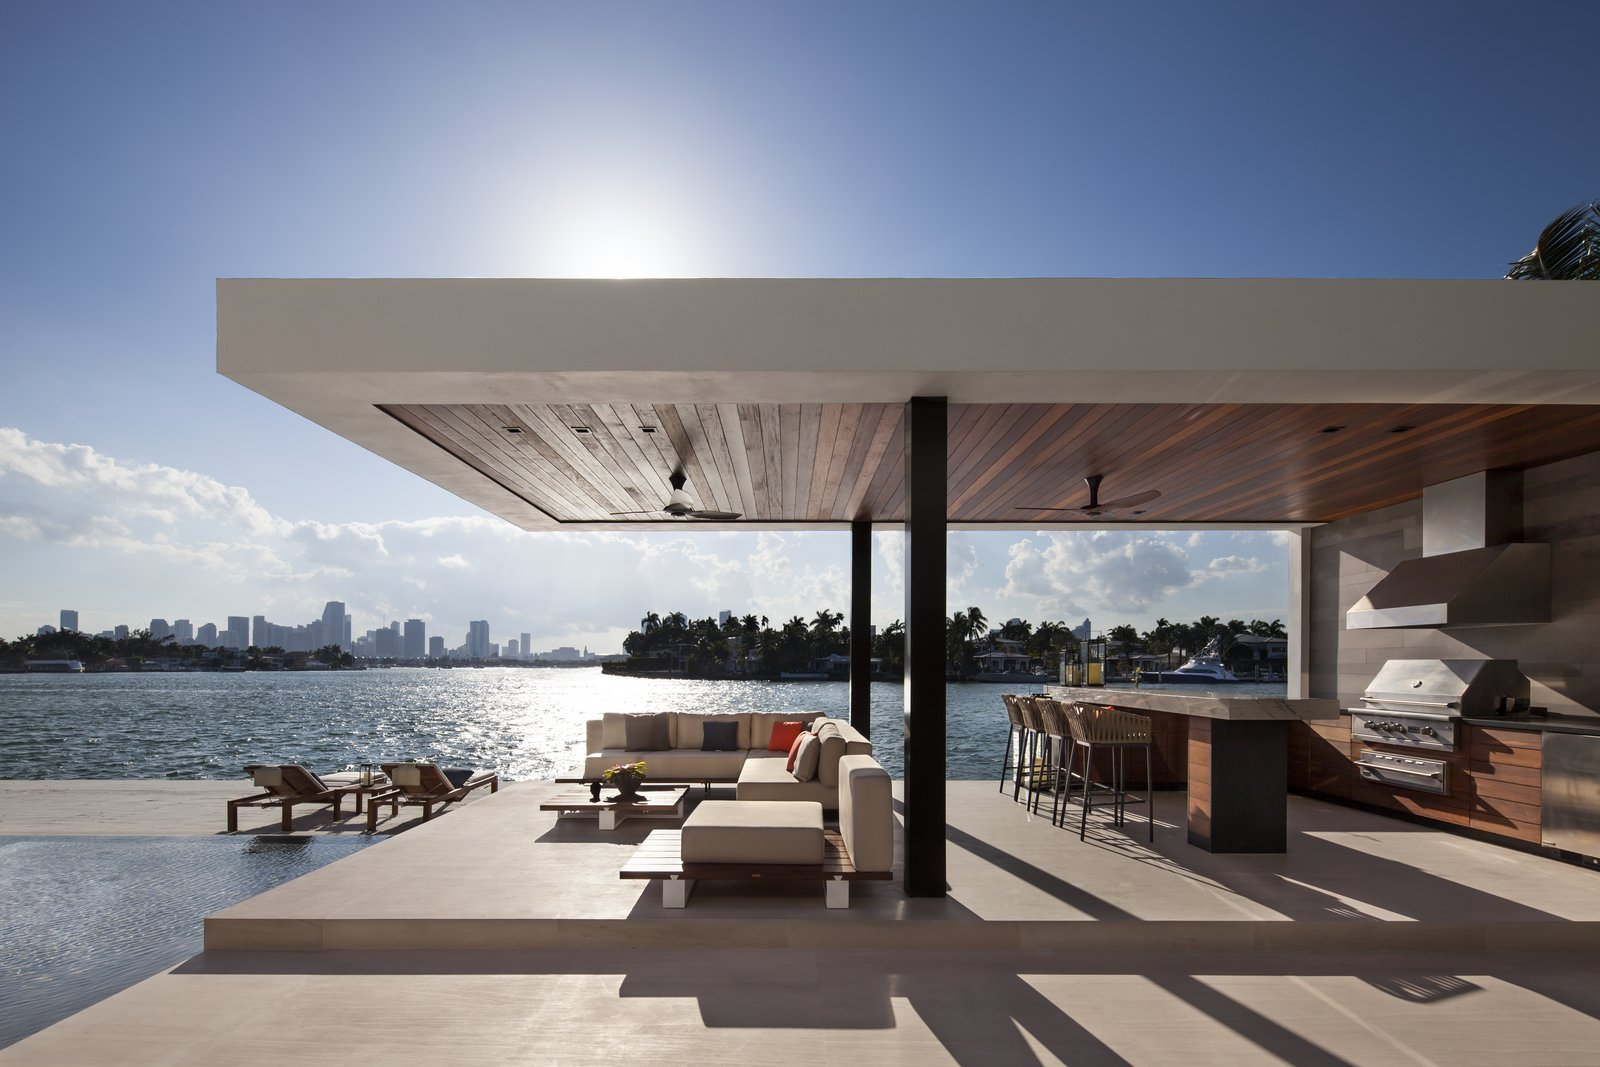 Outdoor kitchen featuring a cantilevered cabana   Casa Clara by Choeff Levy Fischman